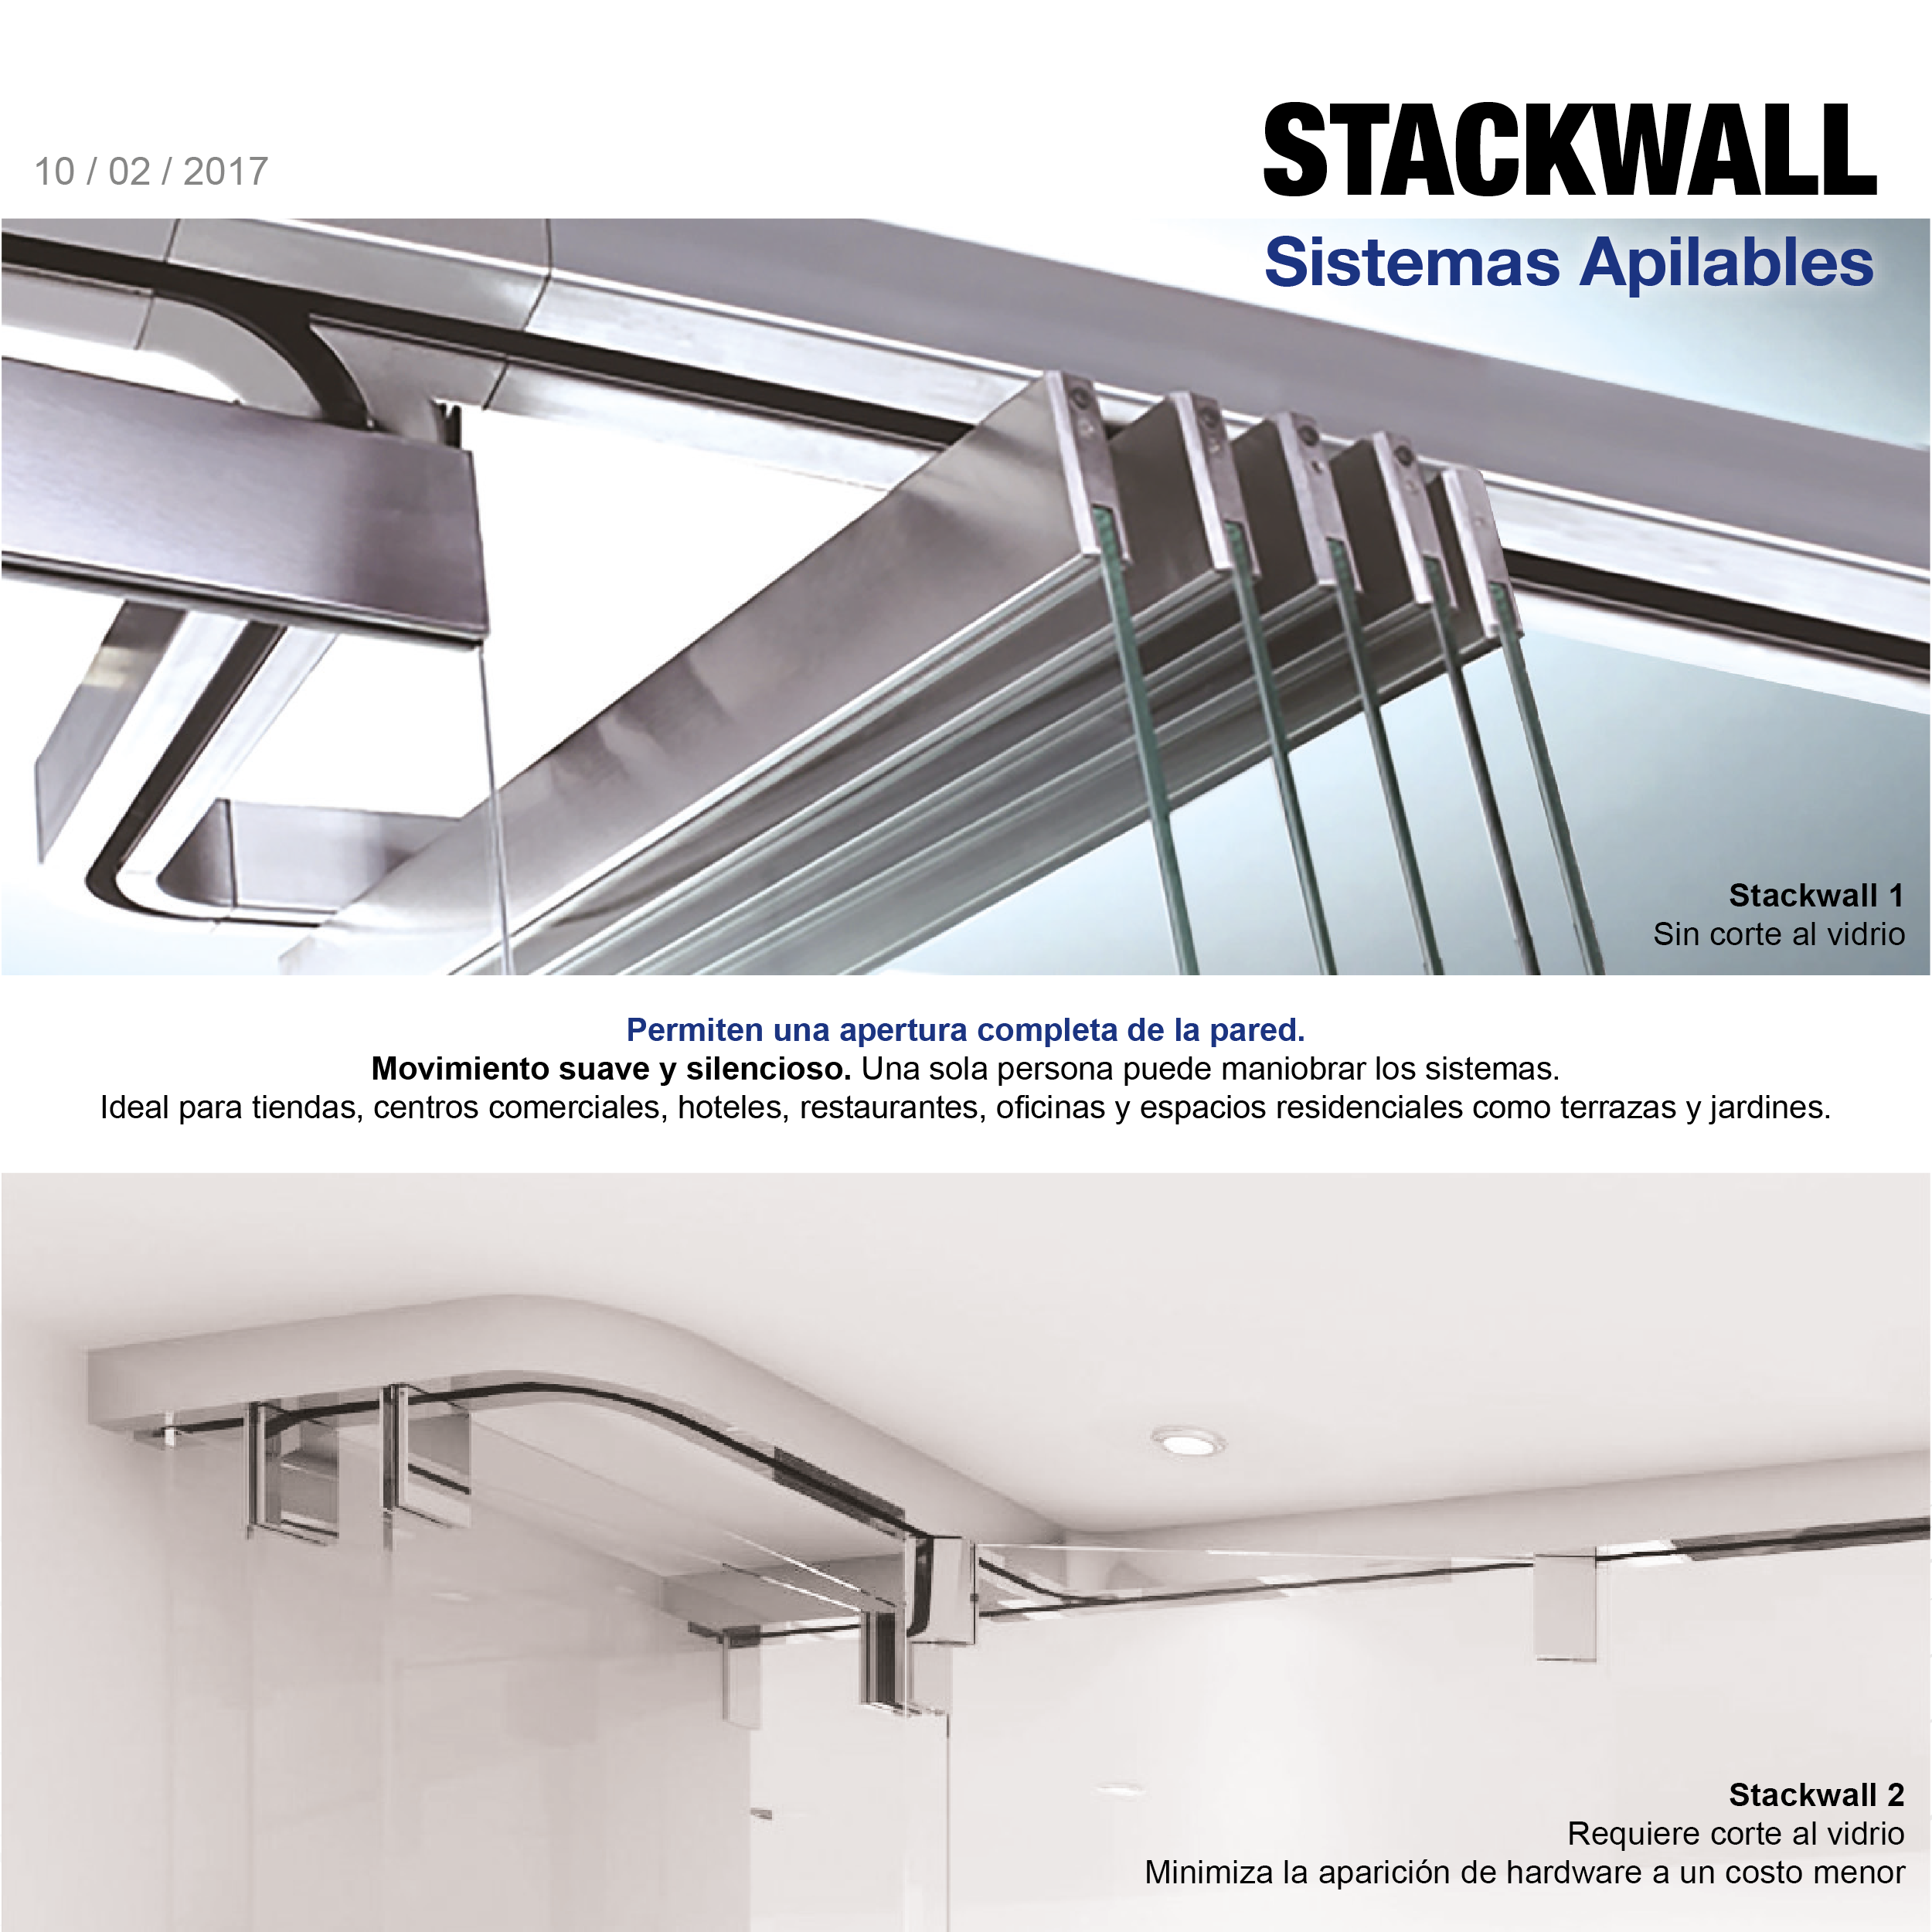 17-02-10 - Stackwall-01